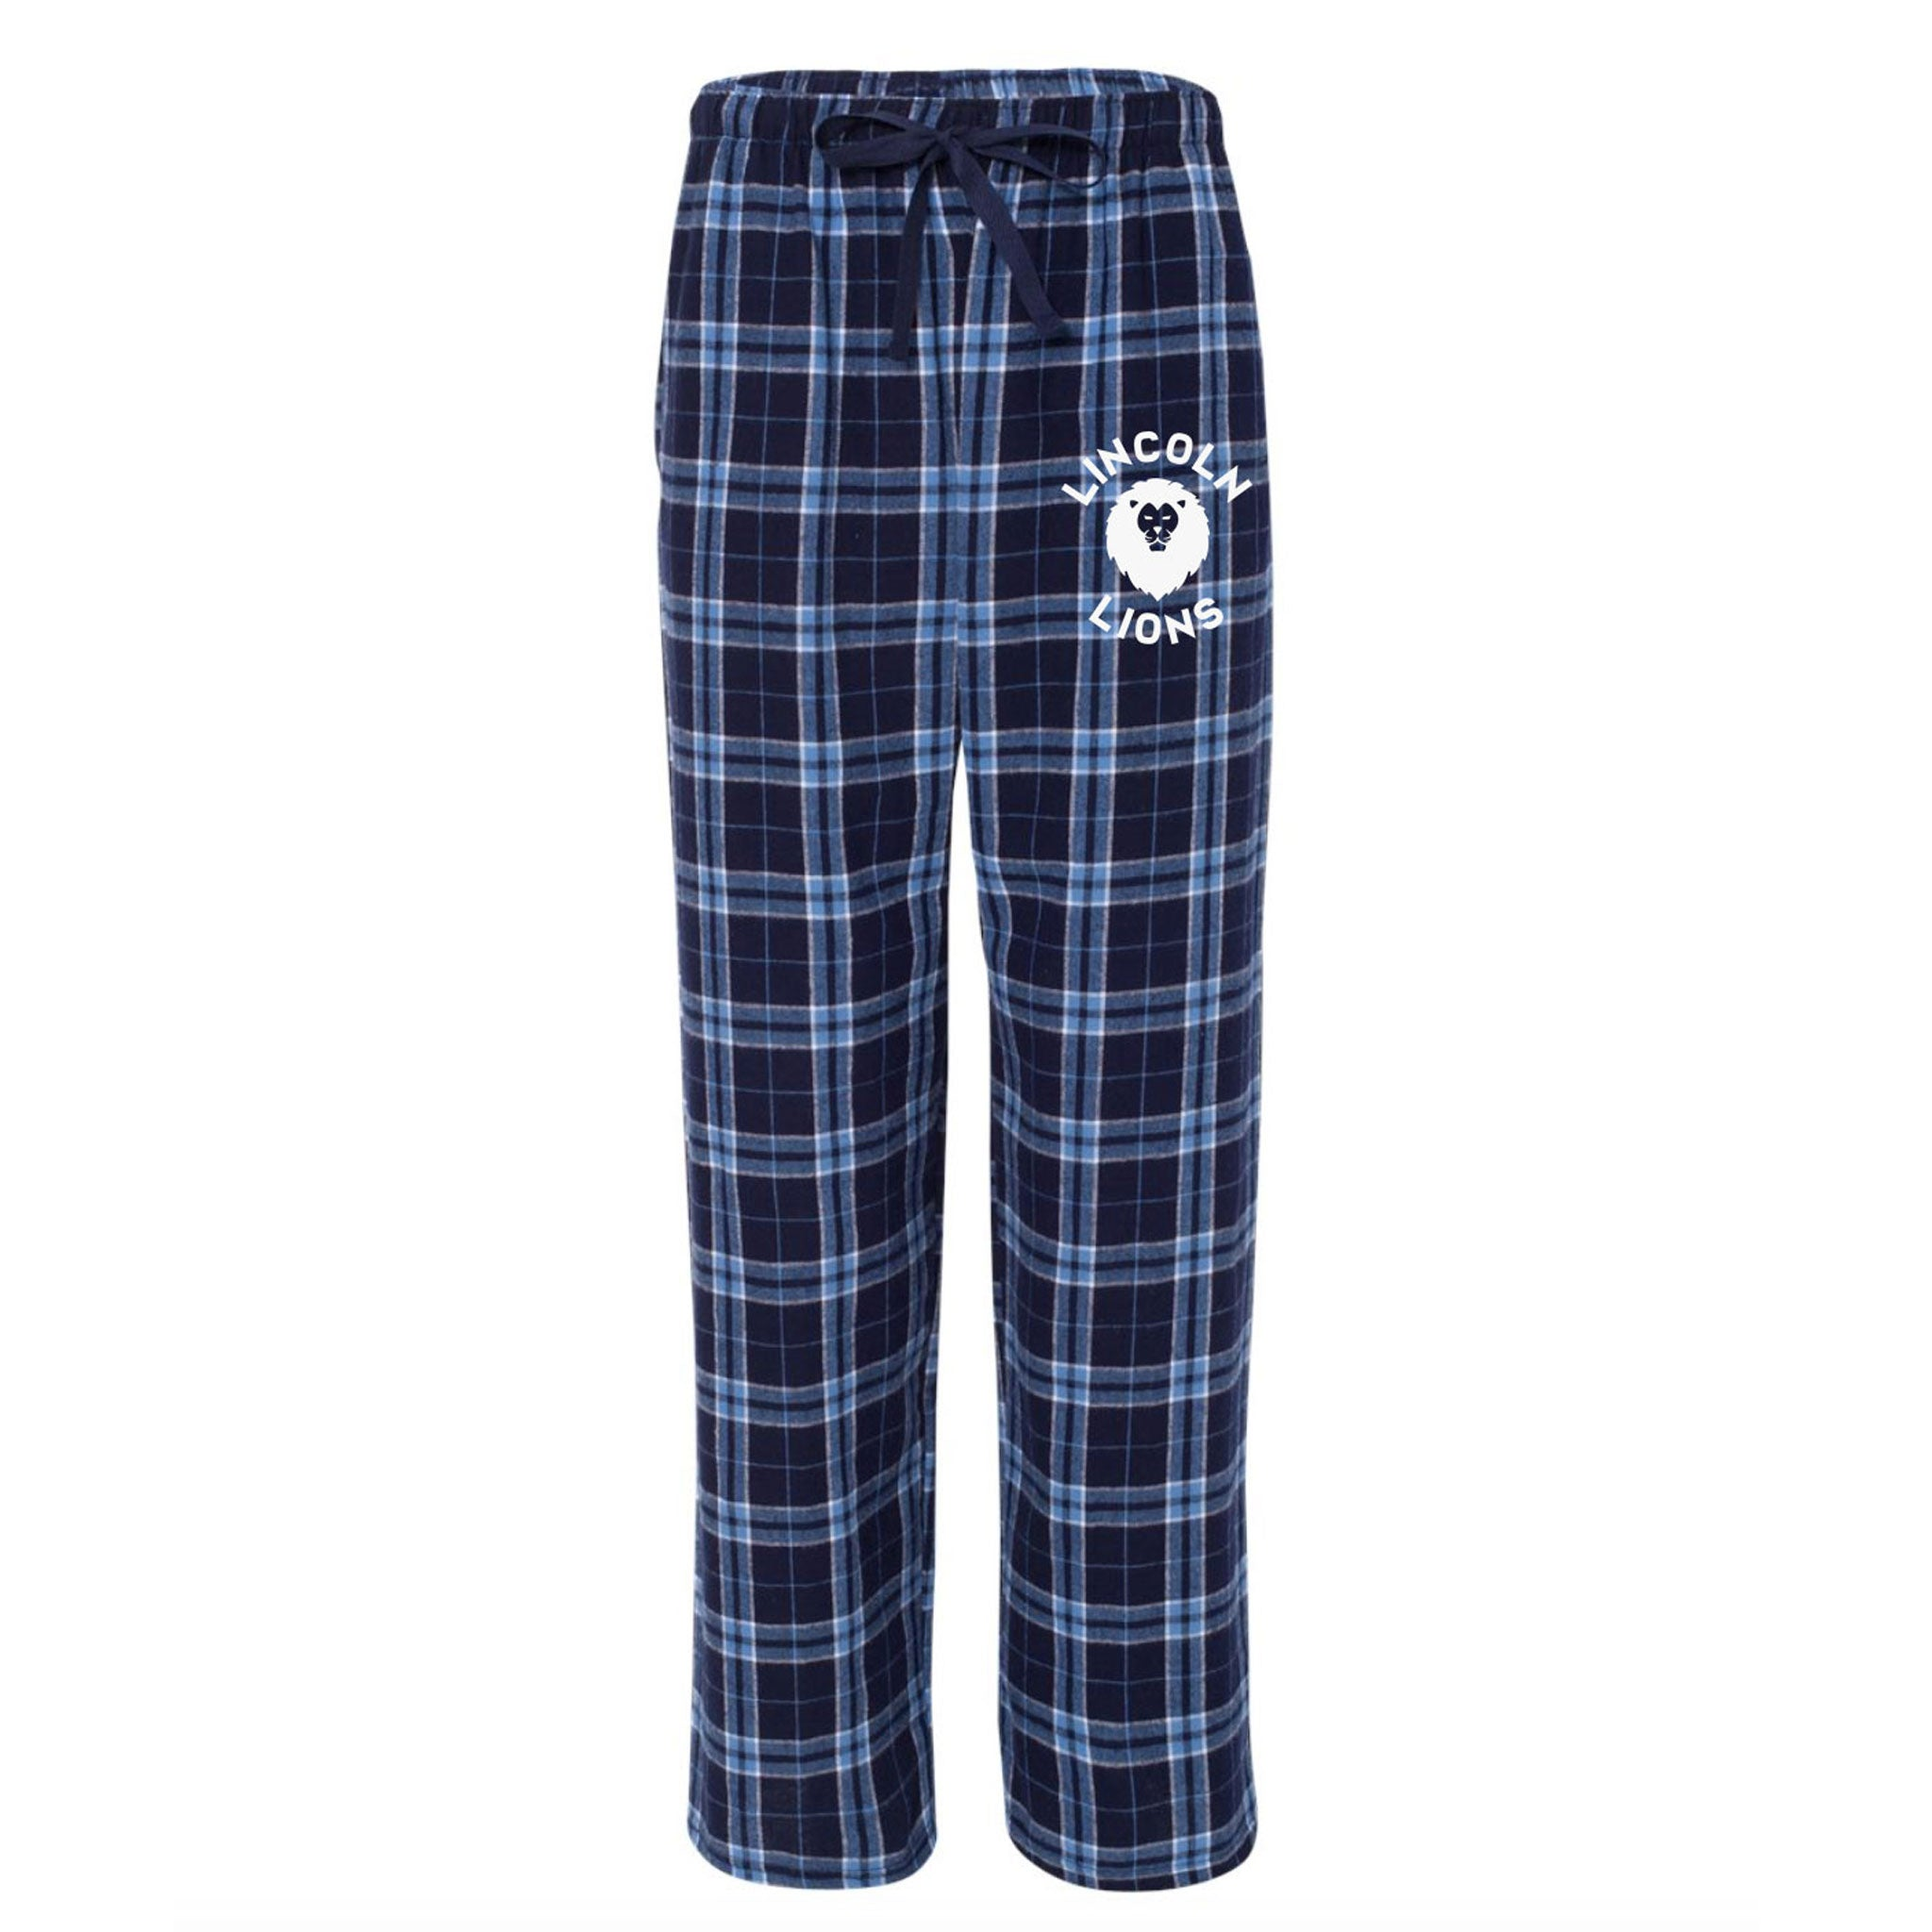 Lincoln Adult Pajama Pants - Navy/Columbia